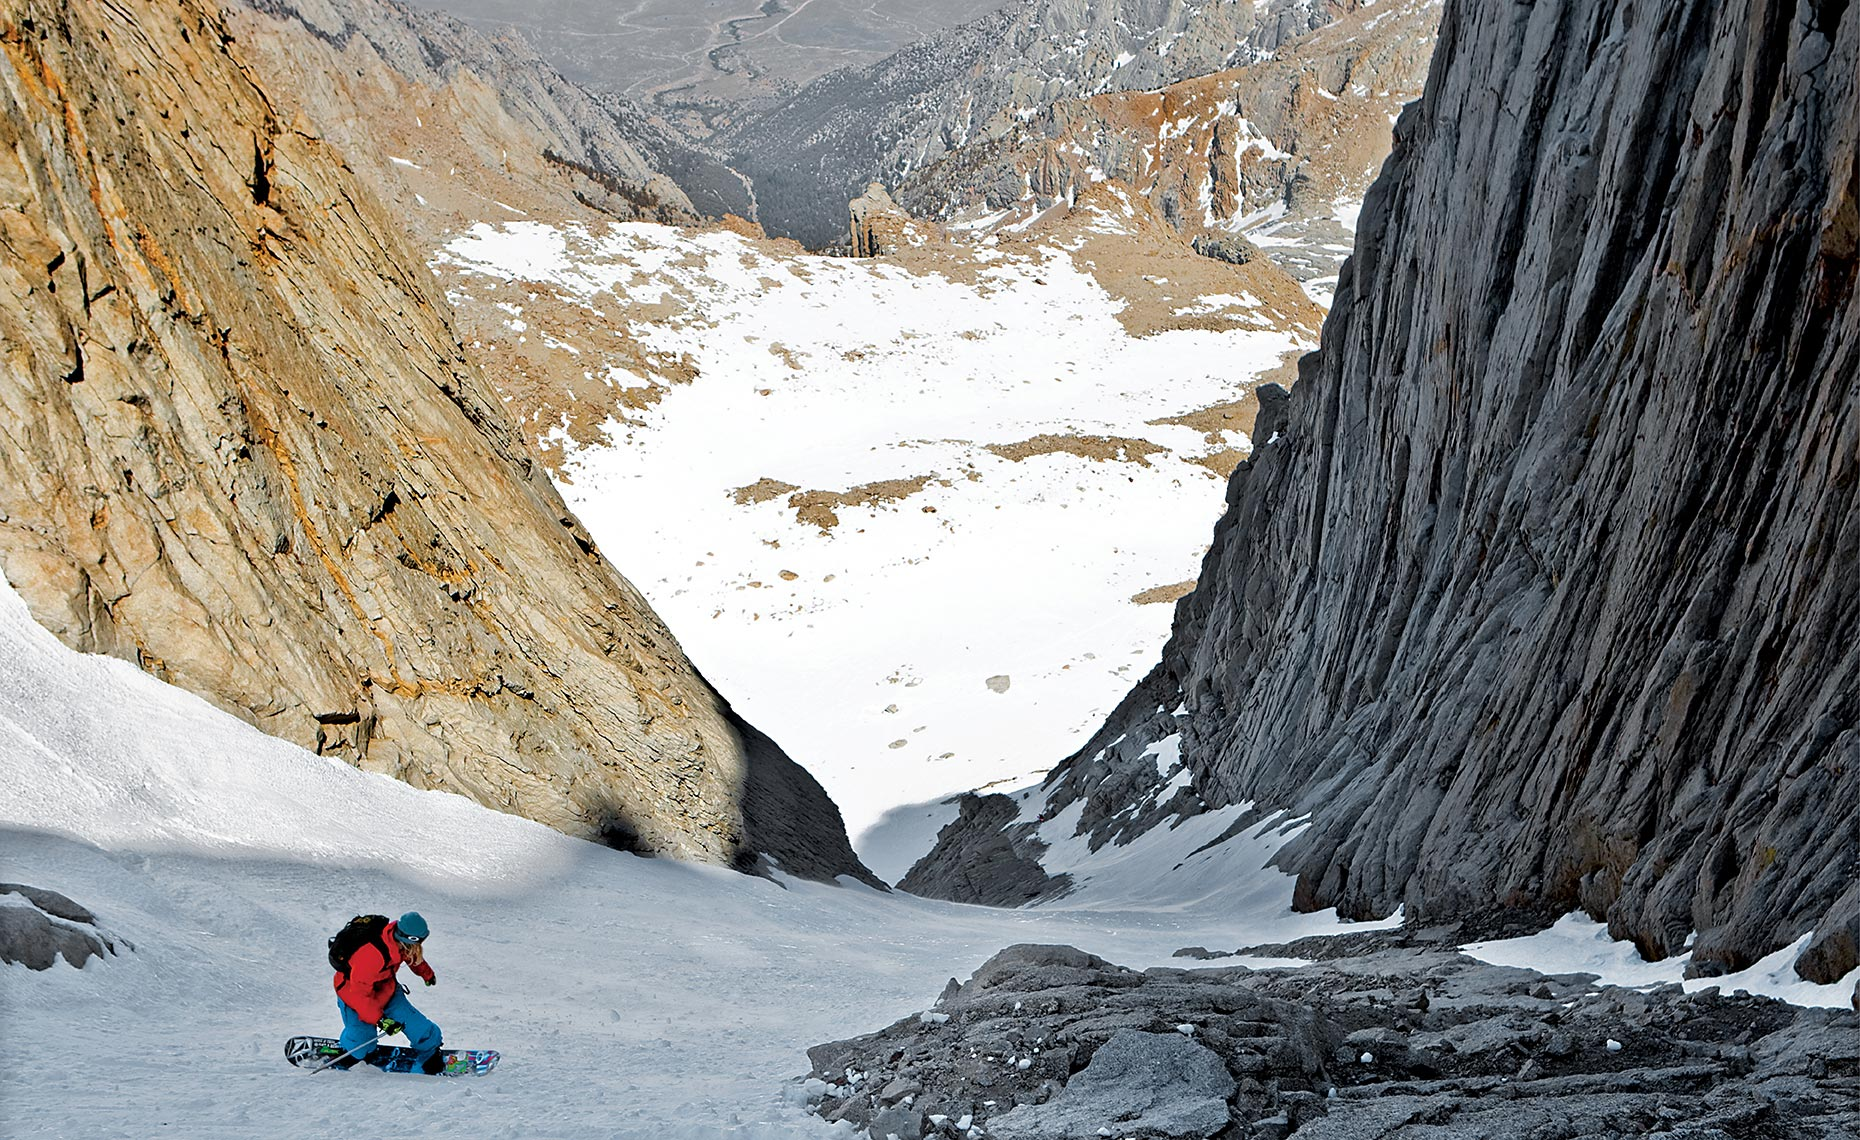 10_Eric_Leines_Mt_Whitney_California_Splitboarding_Adventure_Snowboarding_Chris_Wellhausen_Photography.JPG